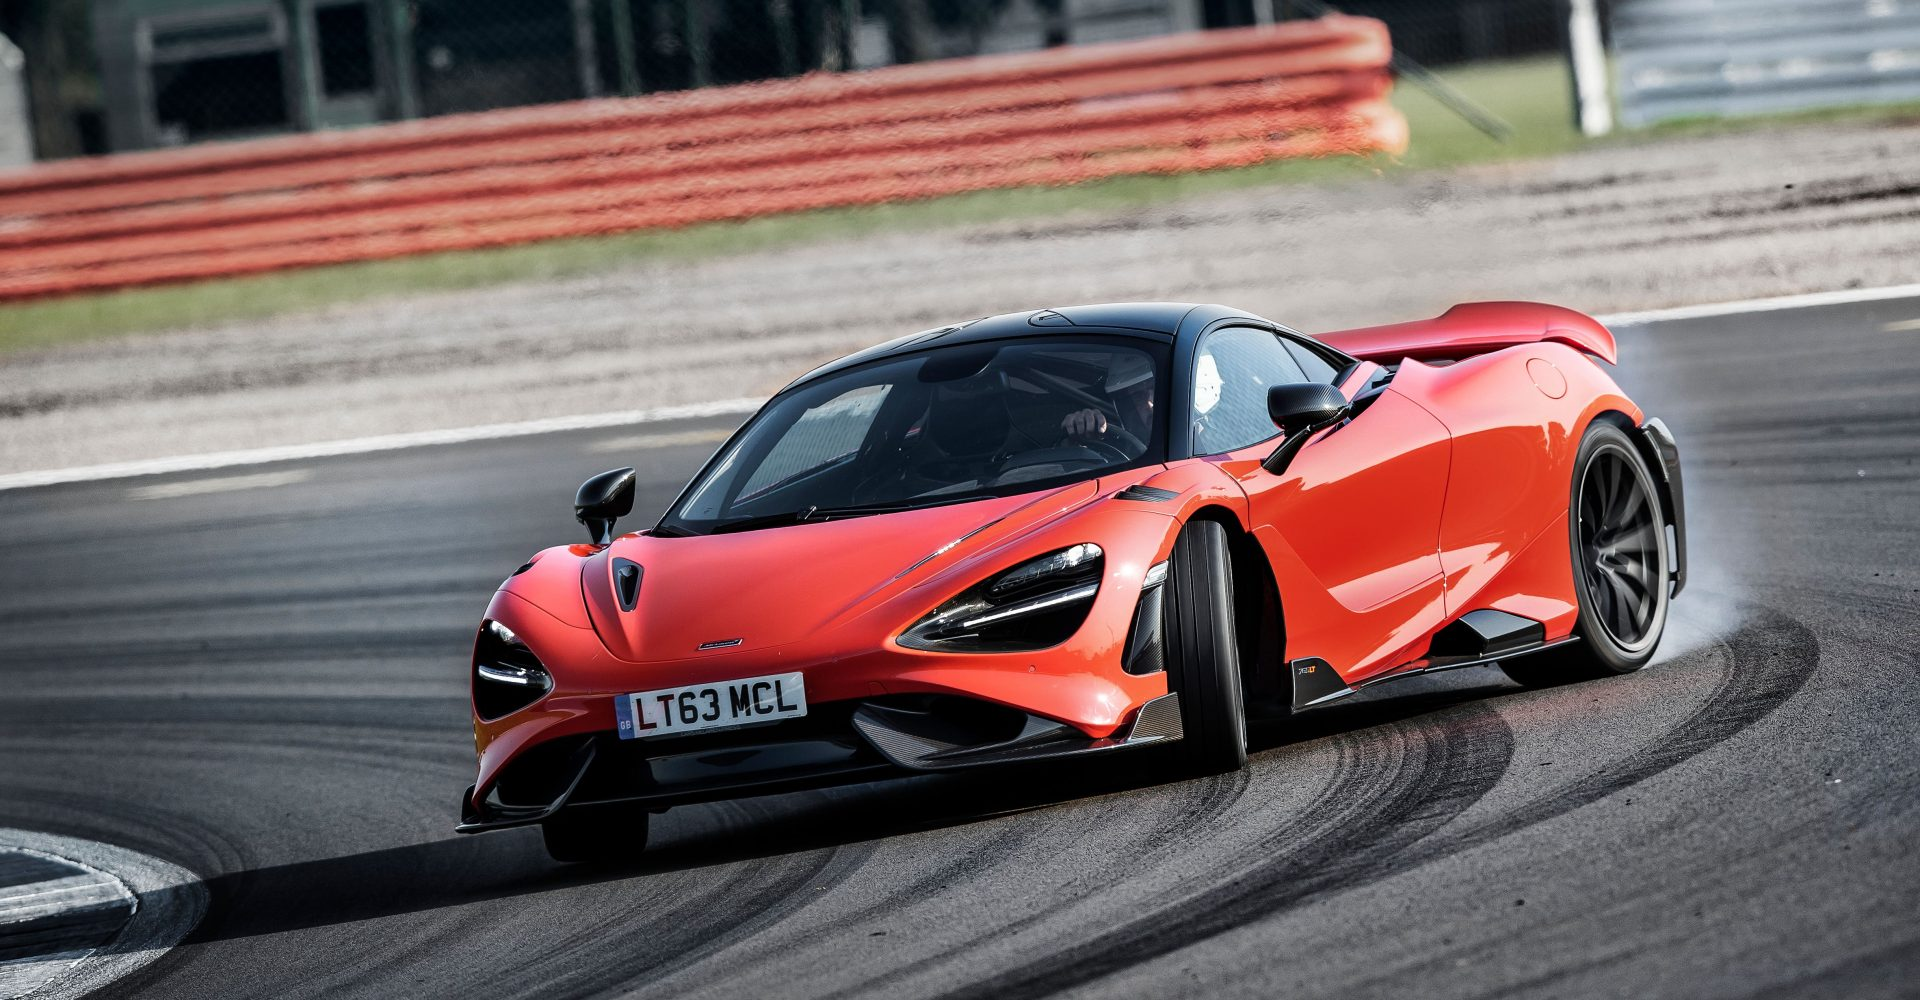 First Drive: The McLaren 765LT monsters around Silverstone Circuit